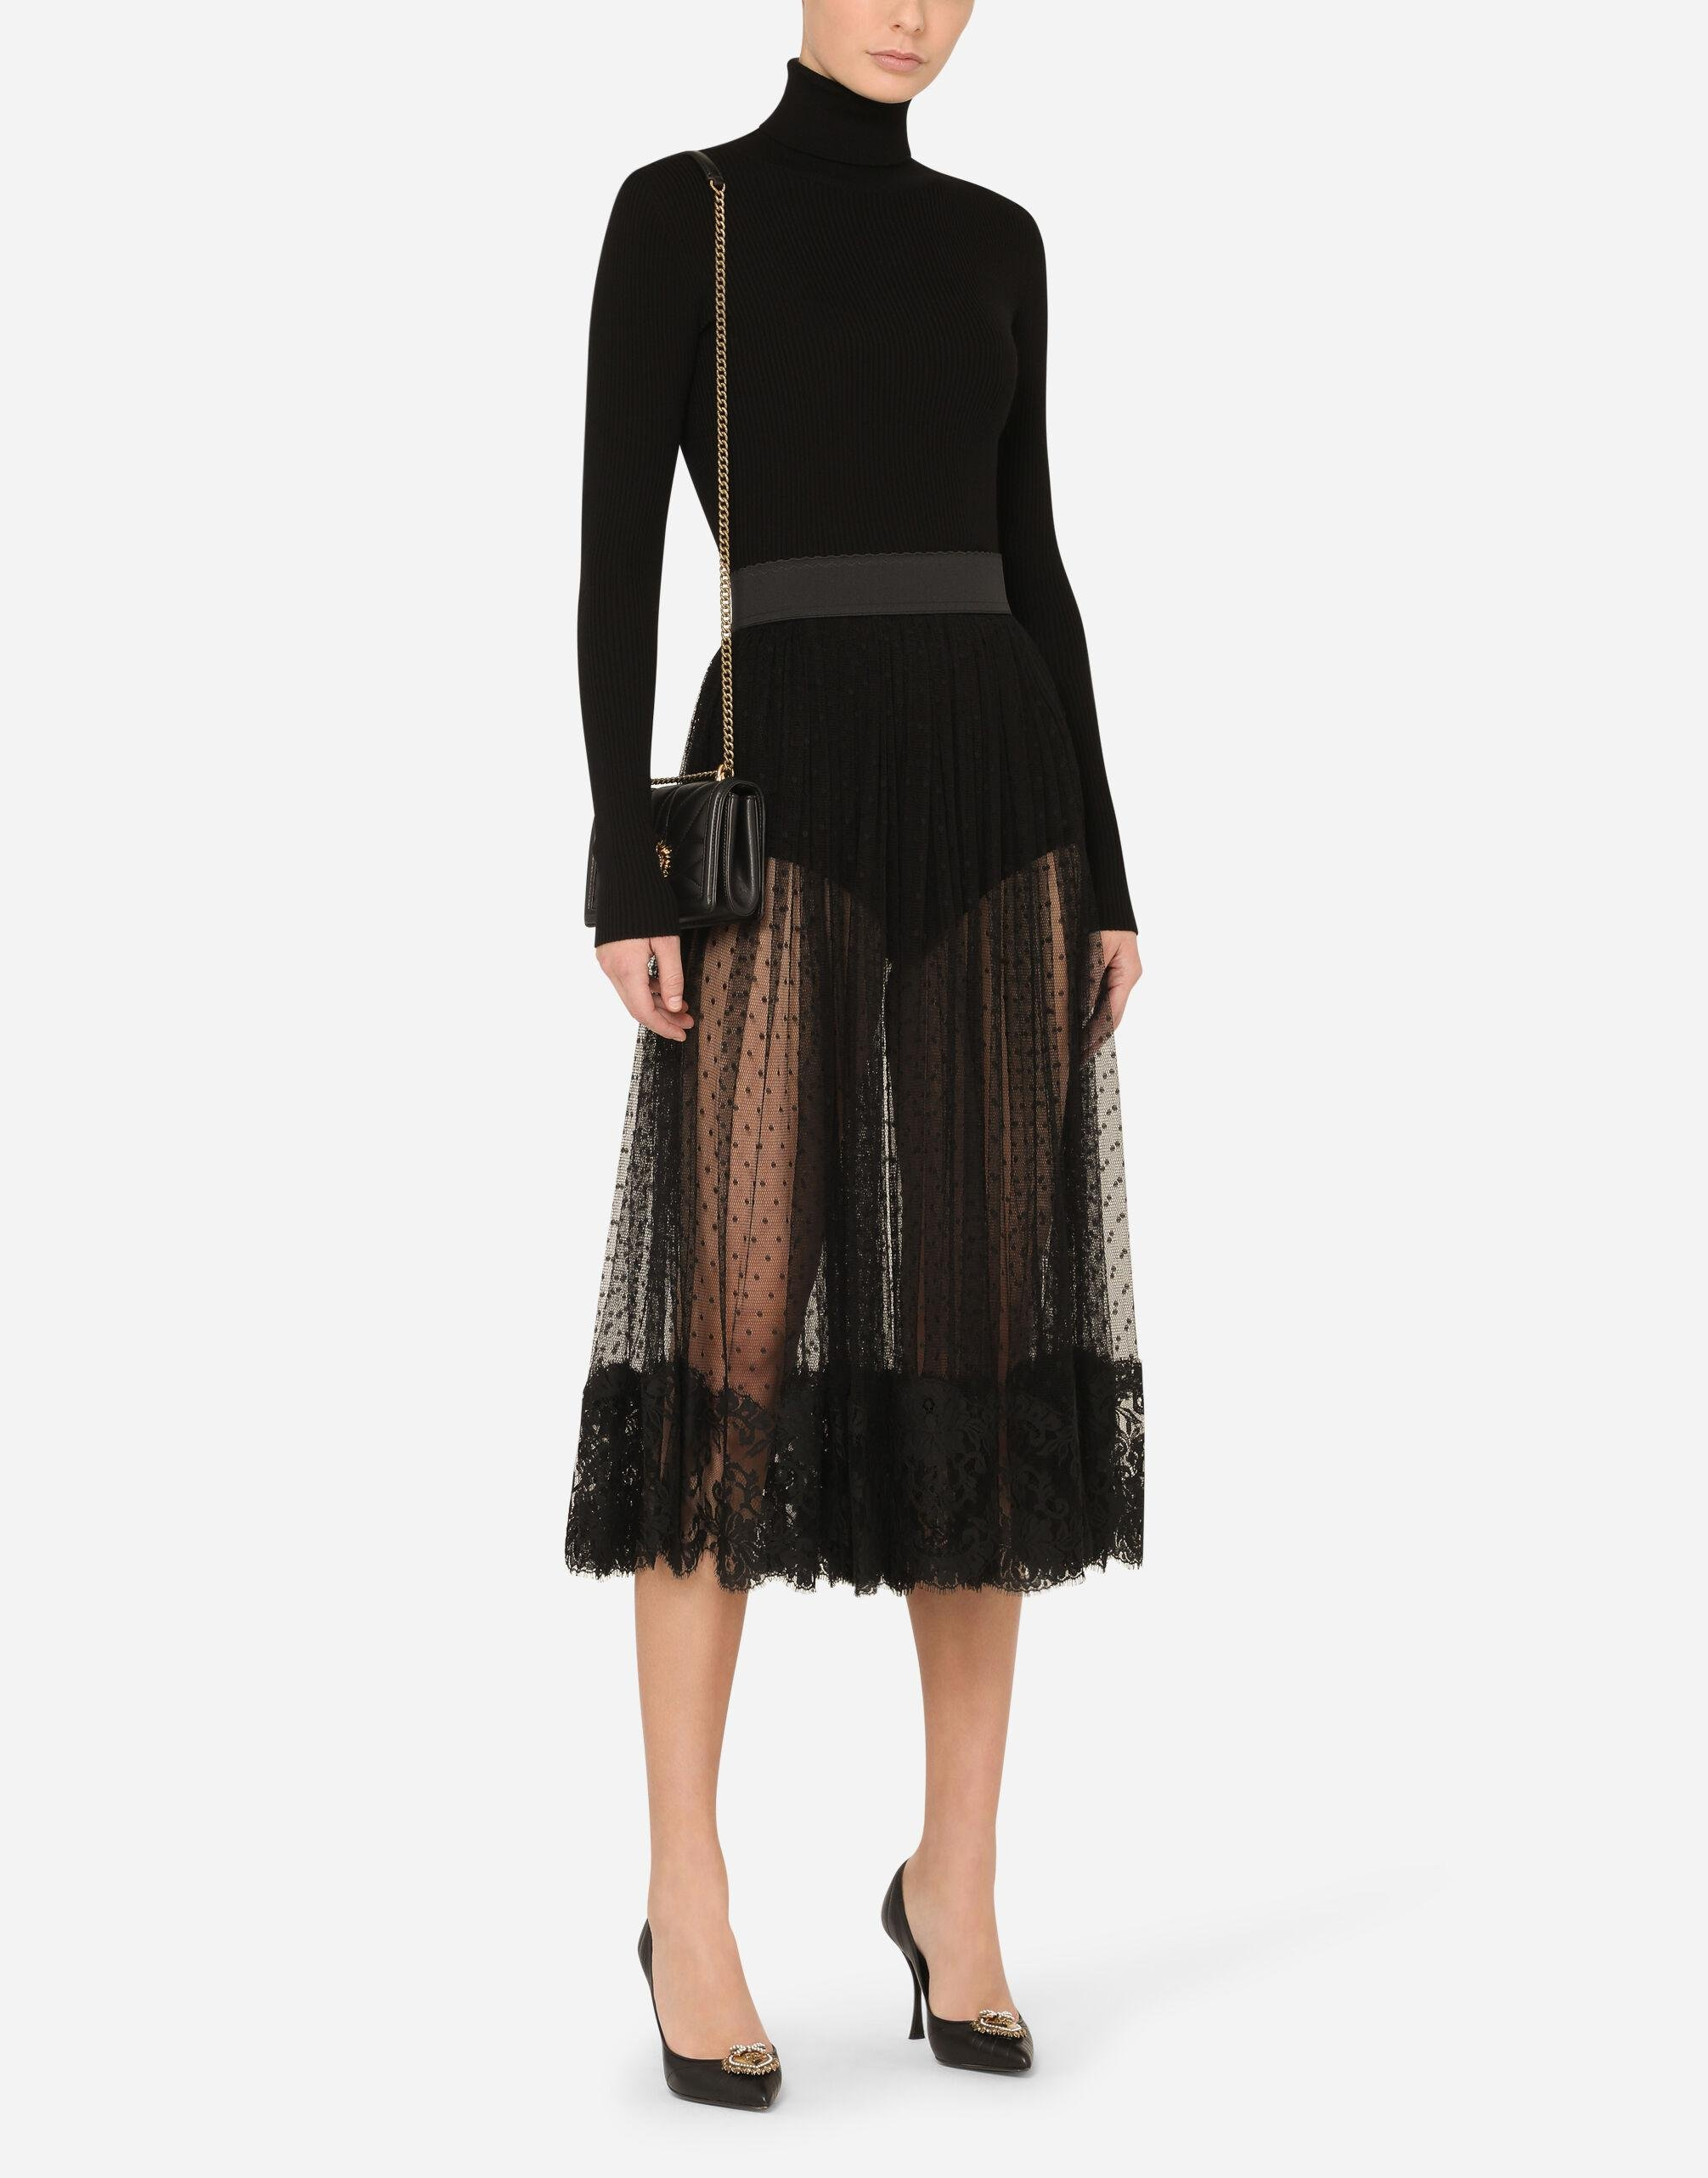 Pleated calf-length skirt in chantilly lace and plumetis 3